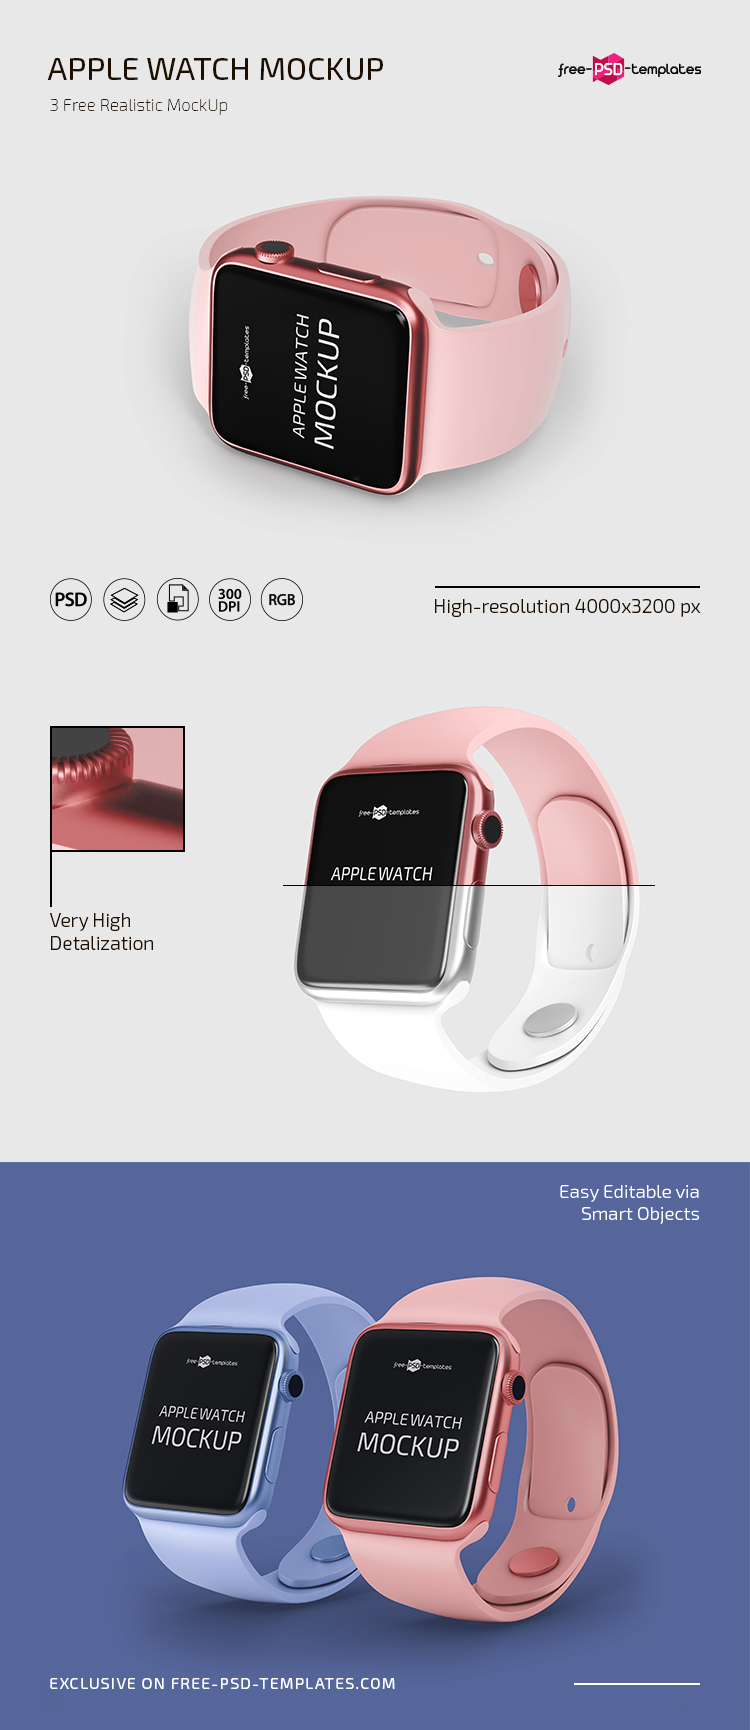 Free PSD Apple Watch Mockup Templates